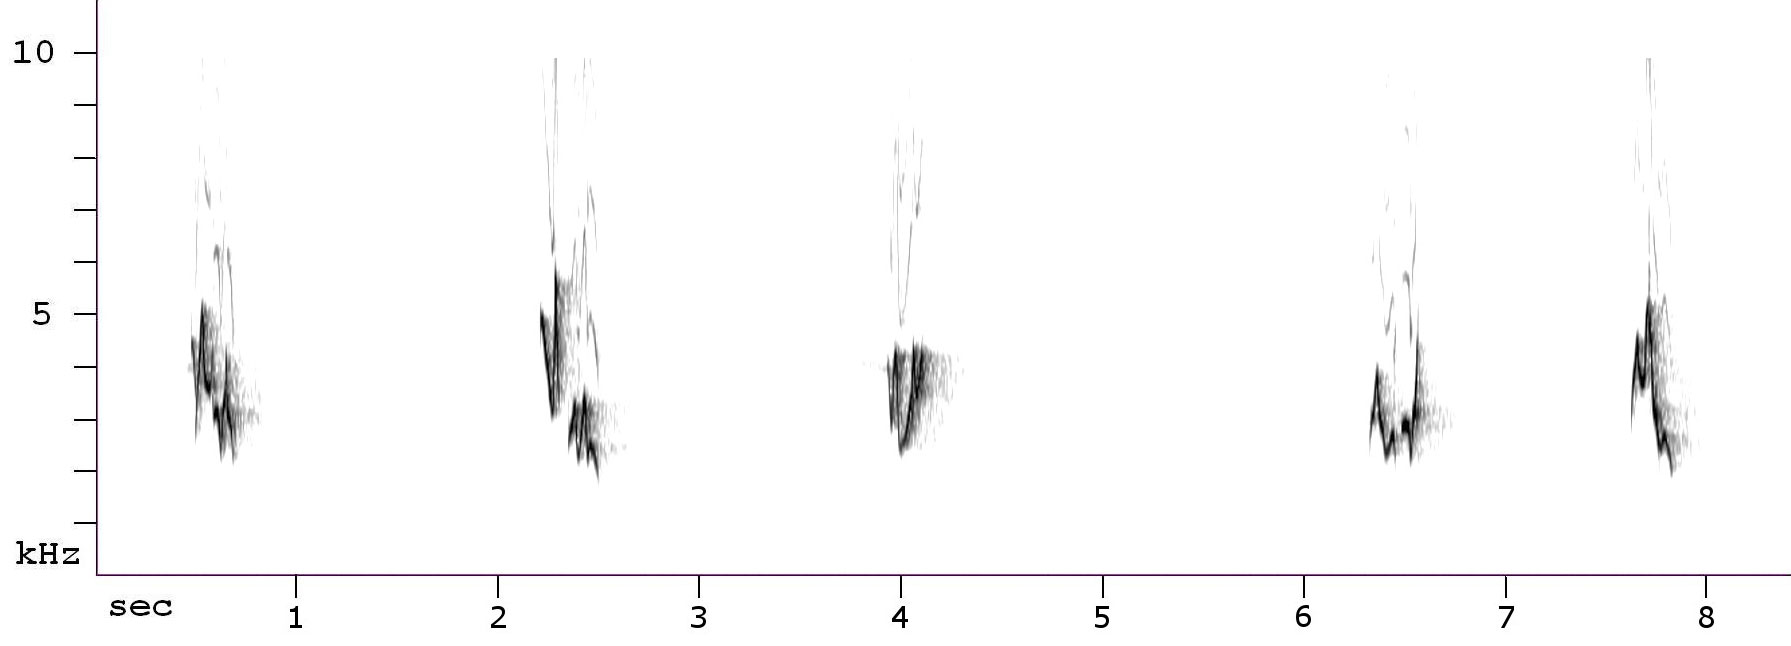 ??? spectrogram. Courtesy of Nathan Pieplow